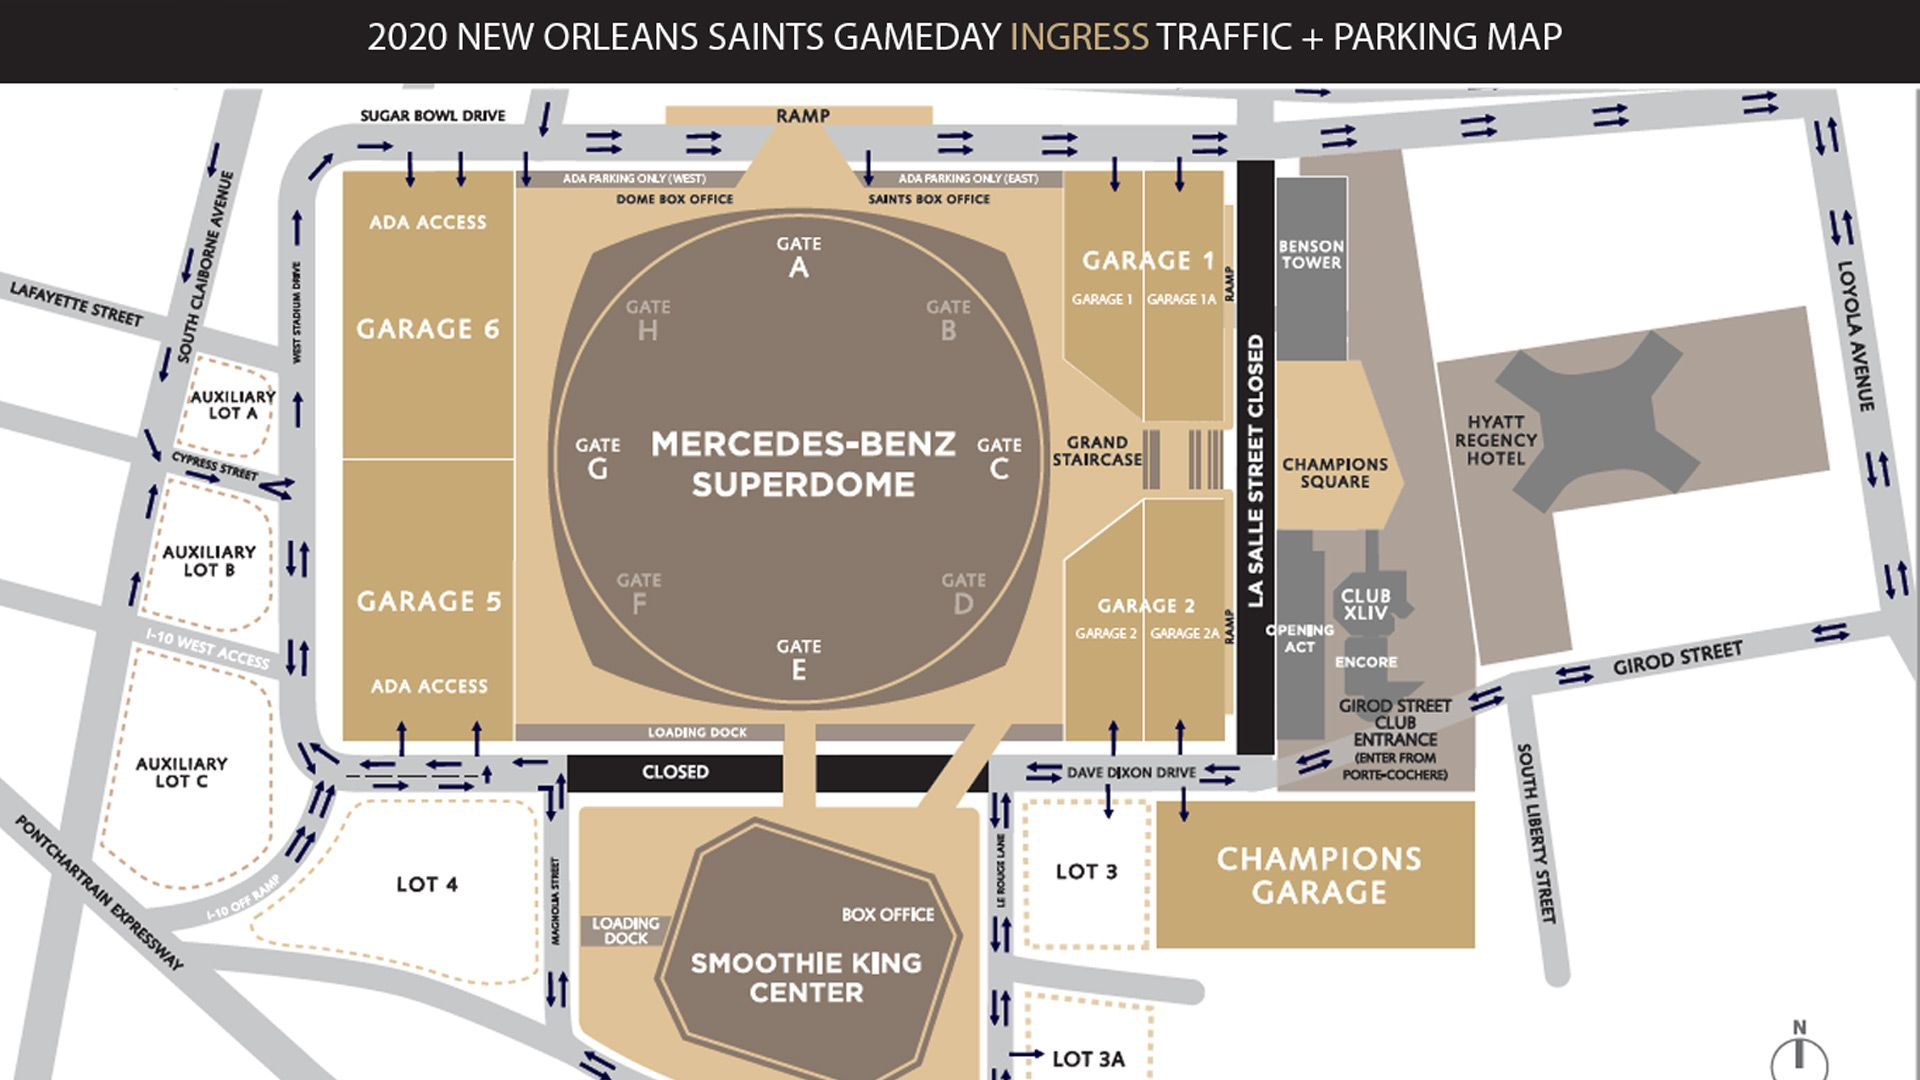 New Orleans Saints Gameday Ingress Traffic and Parking Map